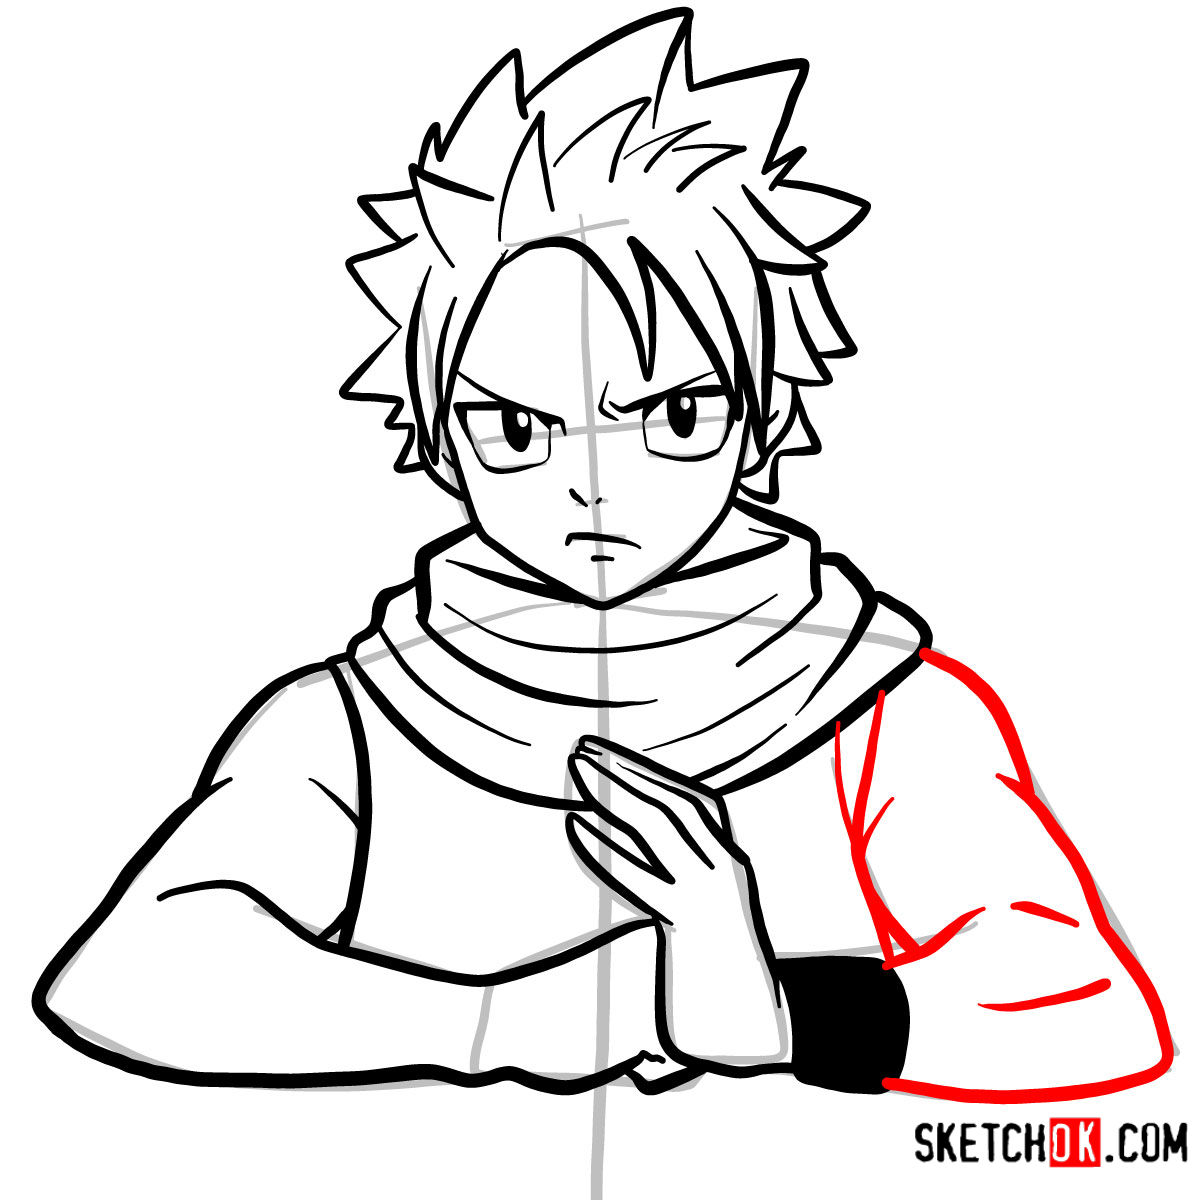 How to draw Natsu Dragneel's face | Fairy Tail - step 09